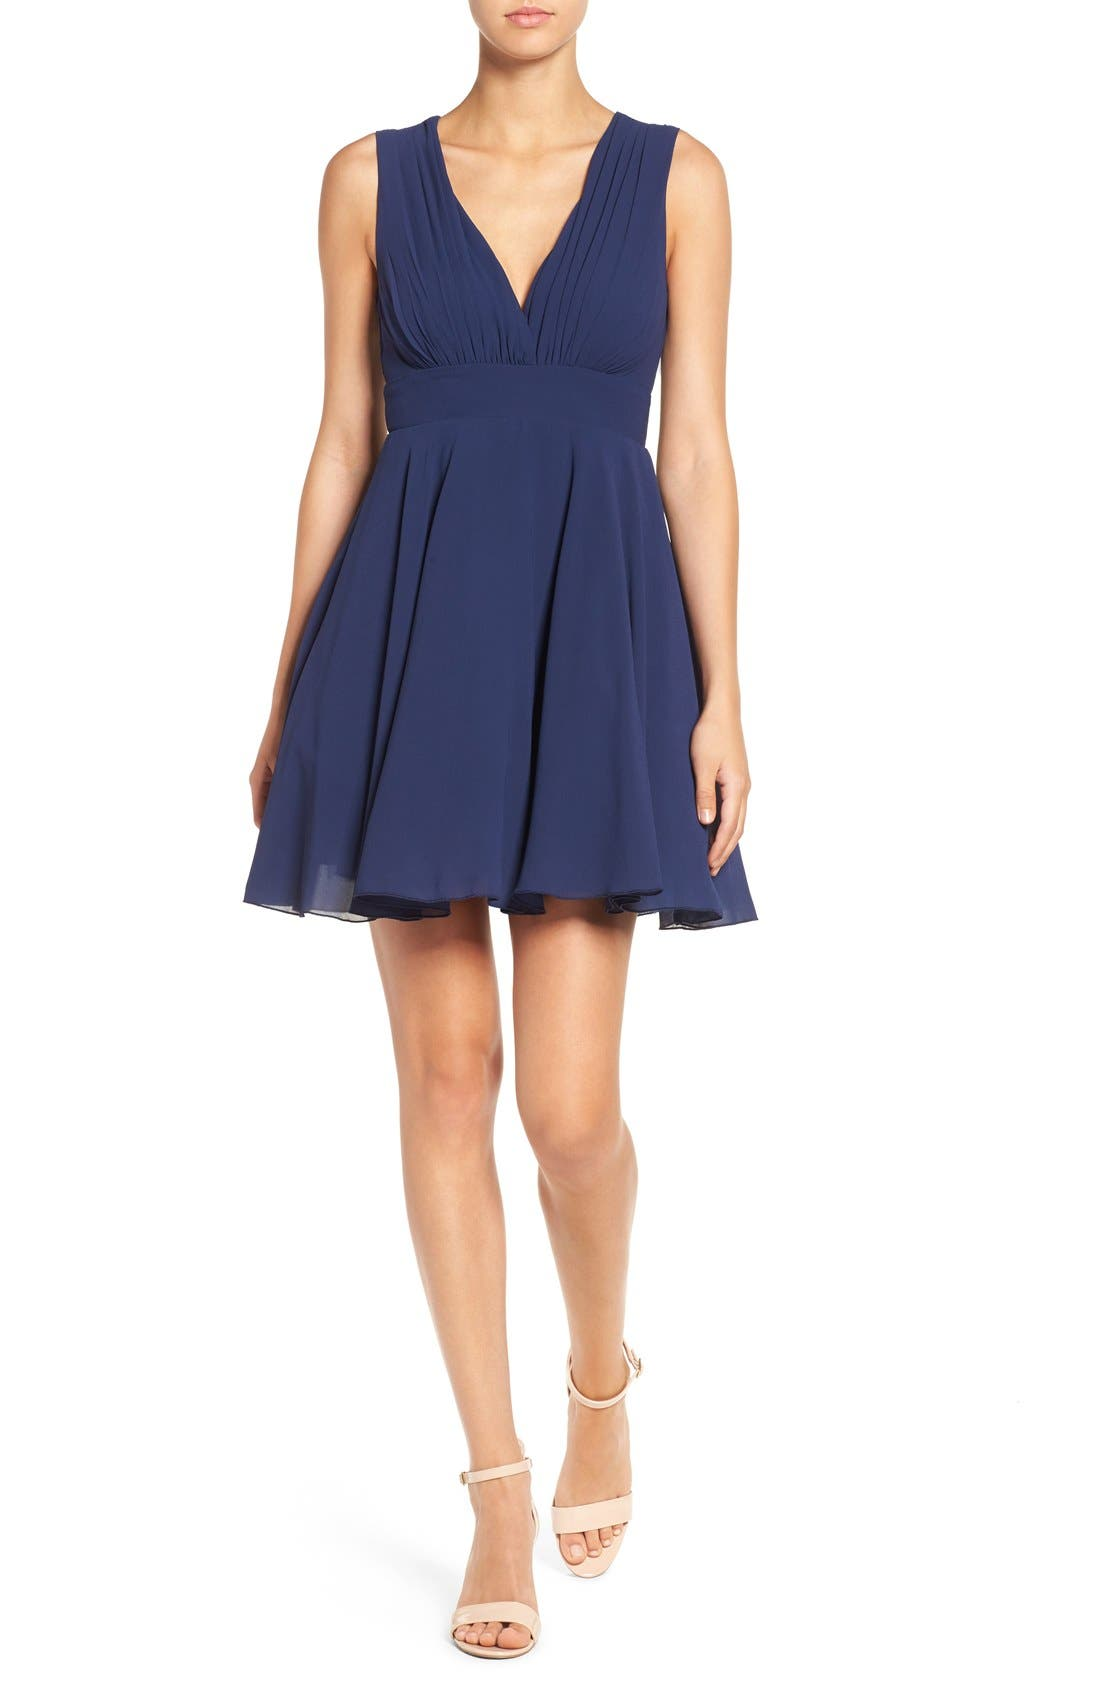 Alternate Image 1 Selected - TFNC V-Neck Fit & Flare Dress